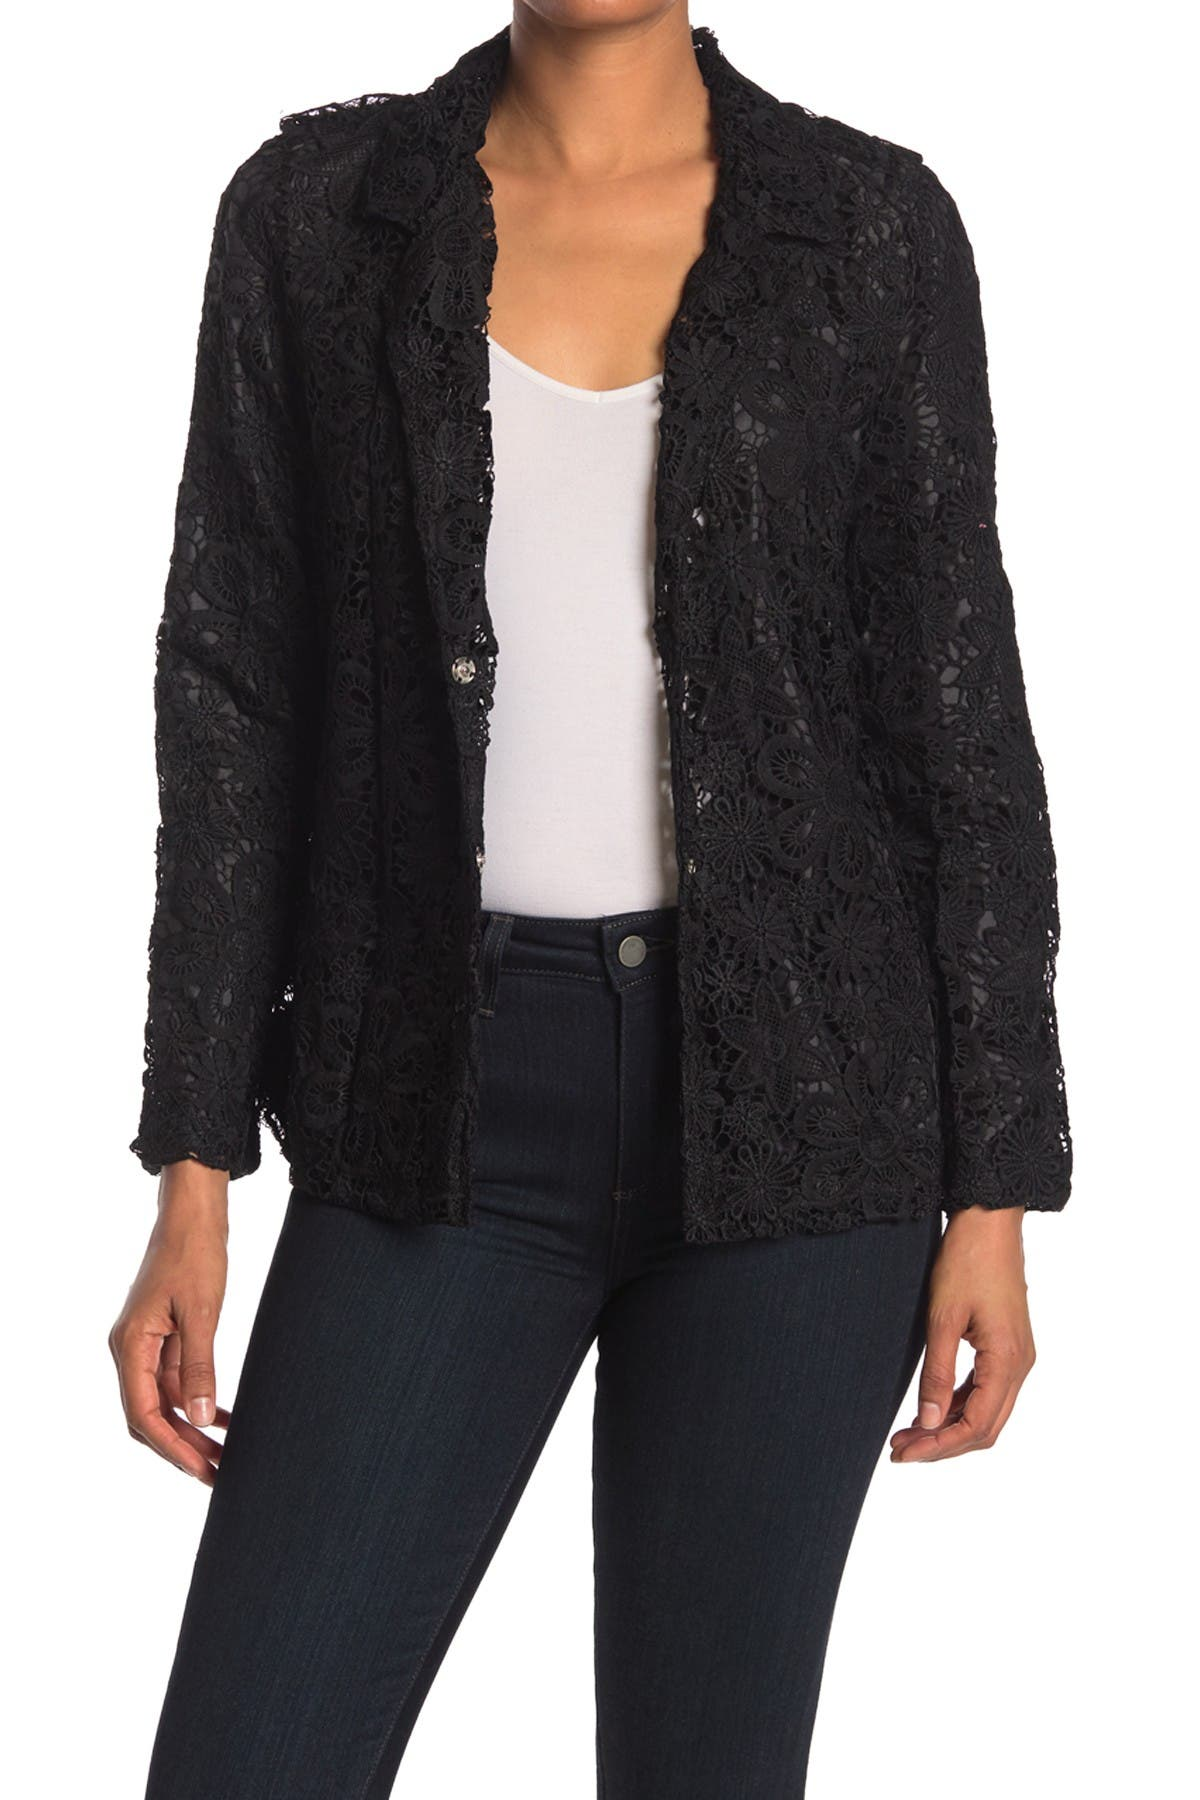 Image of Forgotten Grace Crochet Blazer Jacket